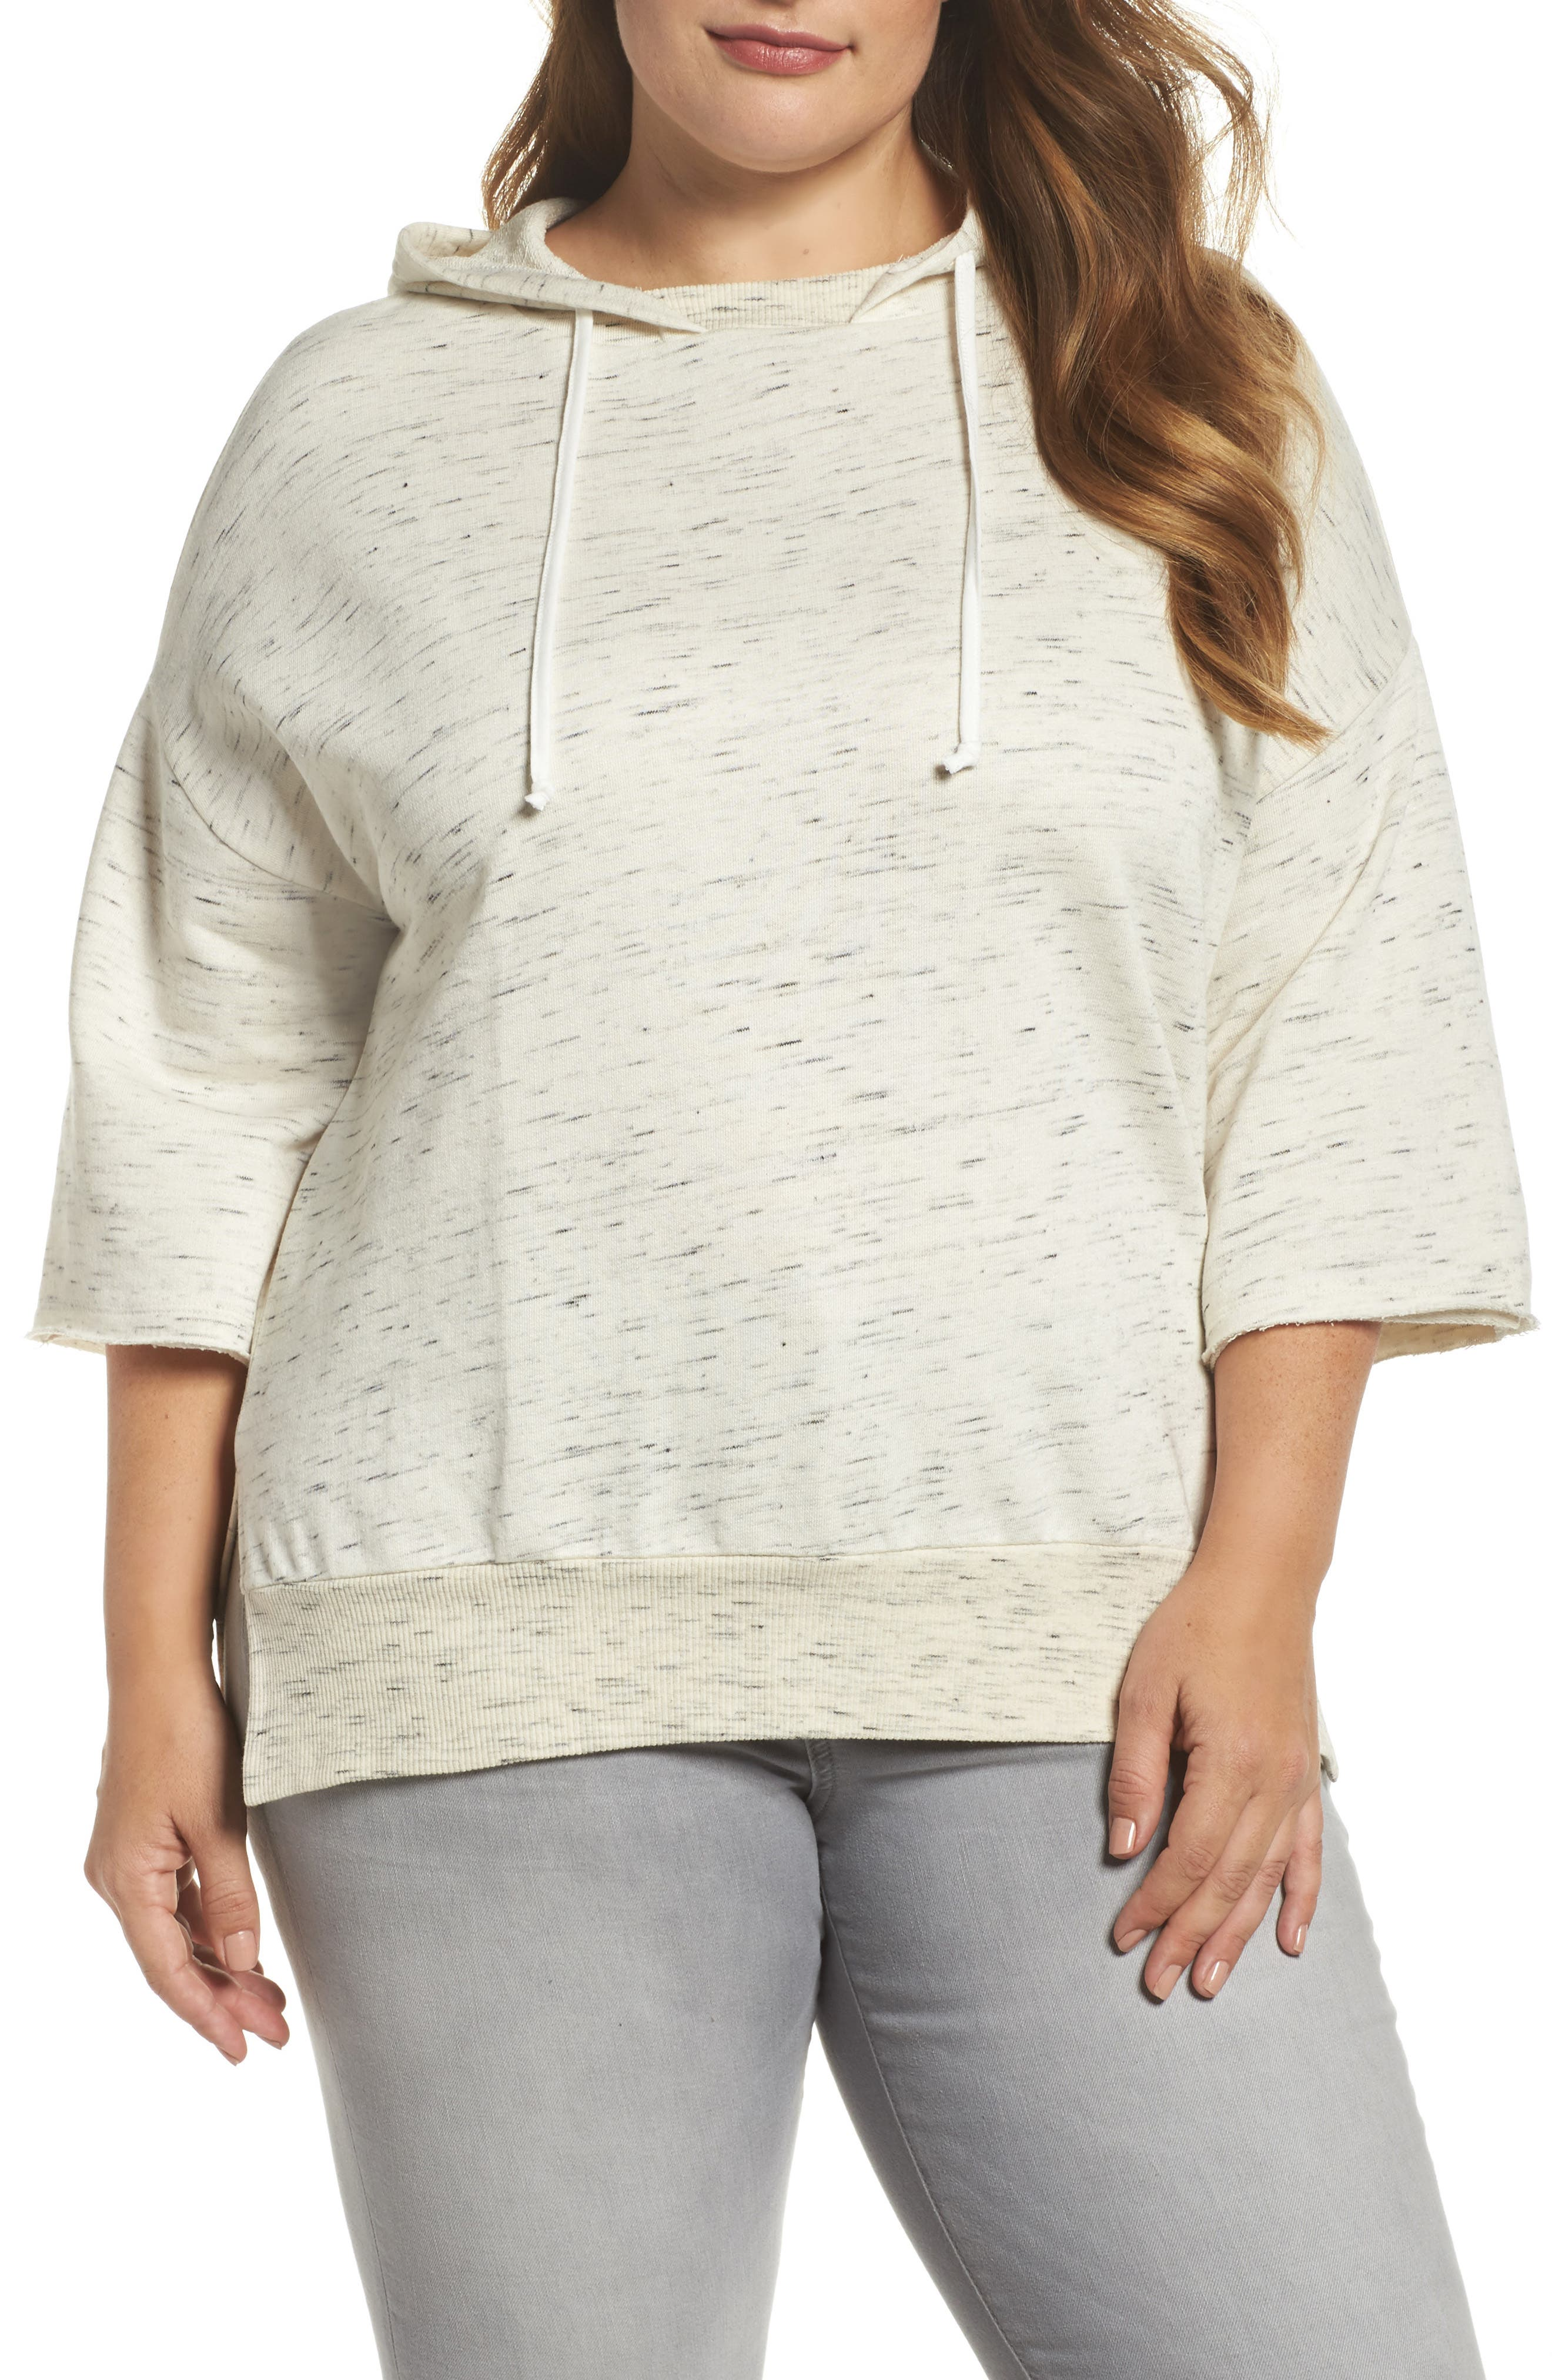 Main Image - Dantelle Hooded Pullover Sweatshirt (Plus Size)